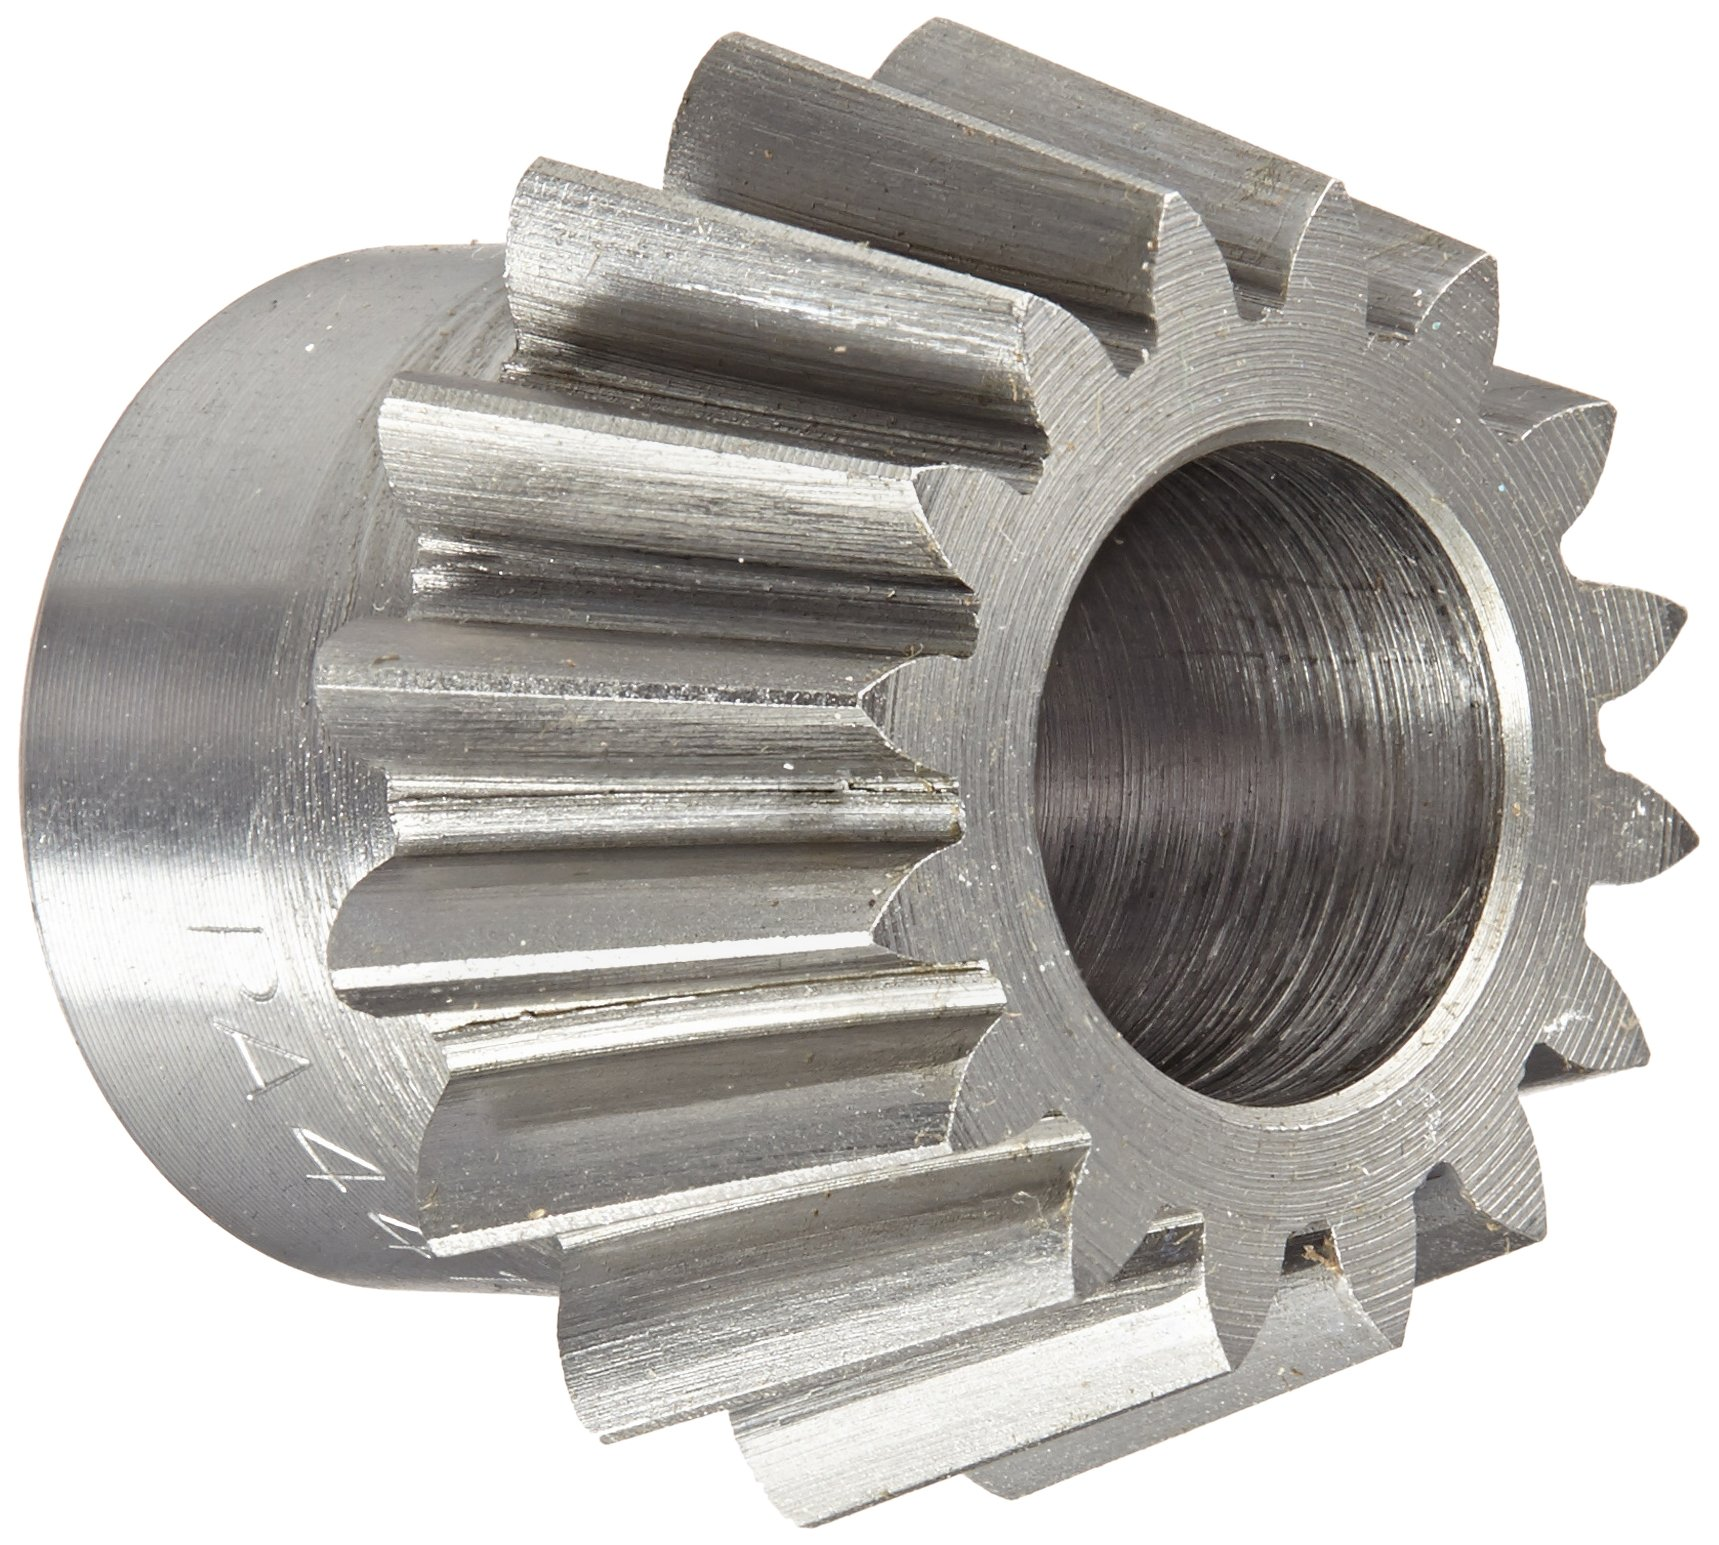 "Boston Gear PA4416Y-P Bevel Pinion Gear, 4:1 Ratio, 0.500"" Bore, 16 Pitch, 16 Teeth, 20 Degree Pressure Angle, Straight Bevel, Steel"